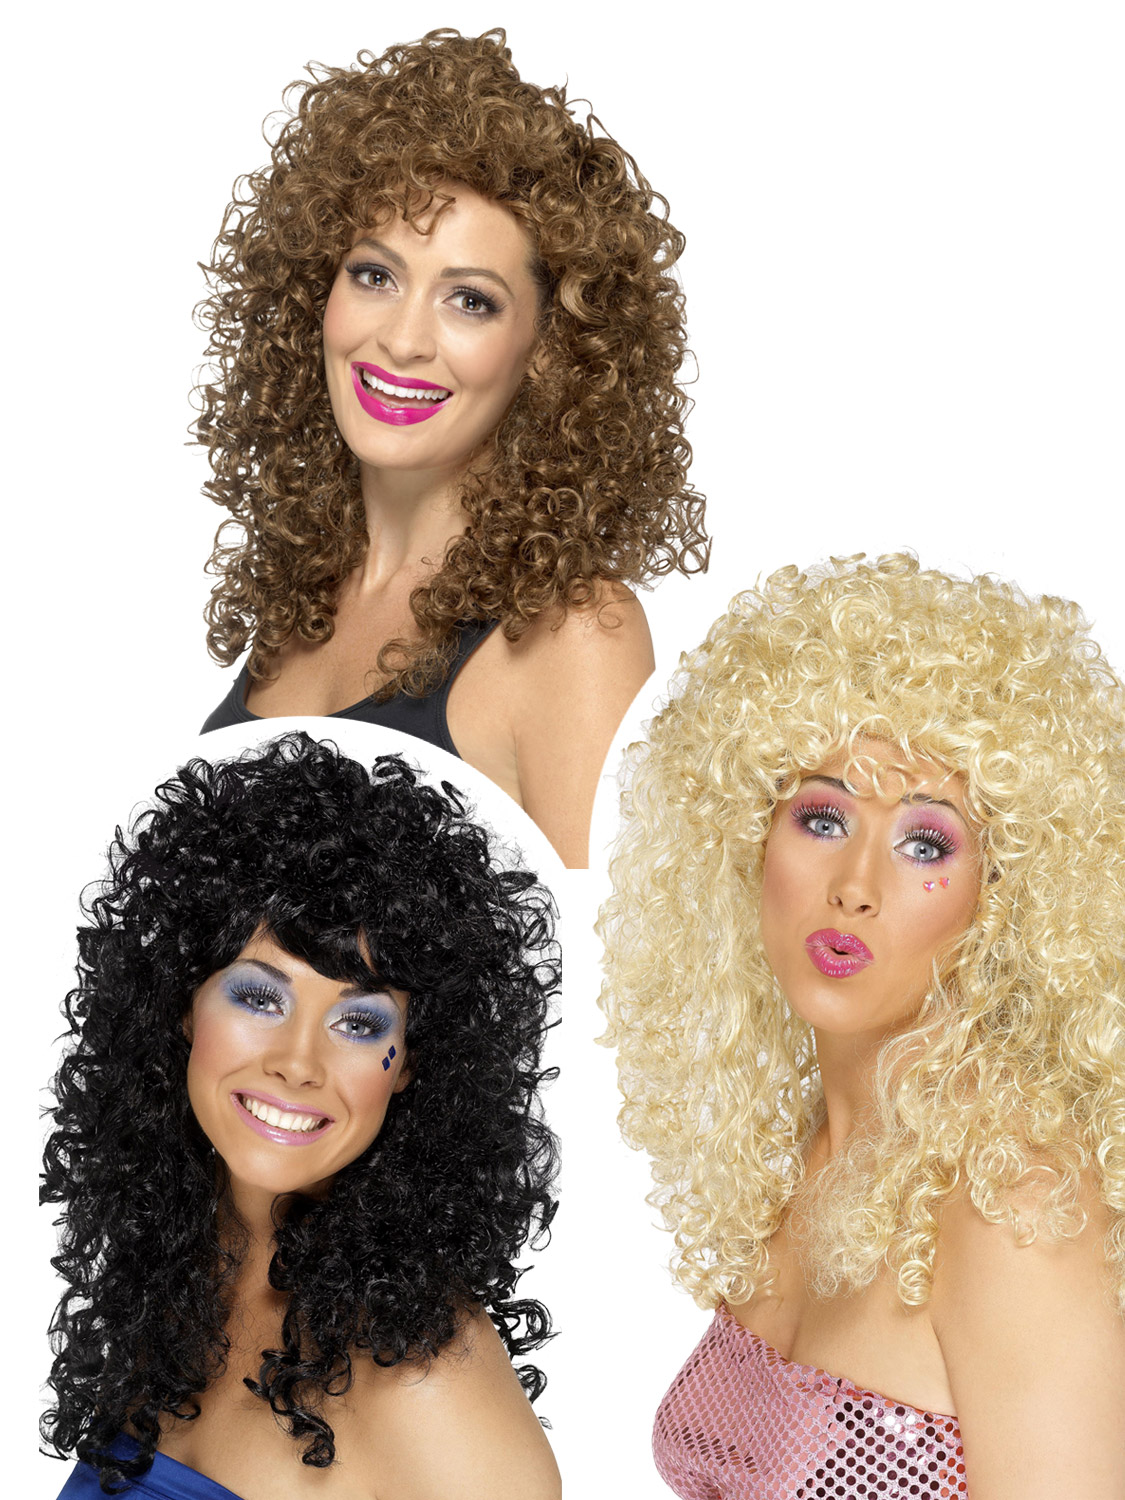 Boogie Babe Perruque-Déguisement Blonde Femme 80 S curly long Smiffys 70 s Costume